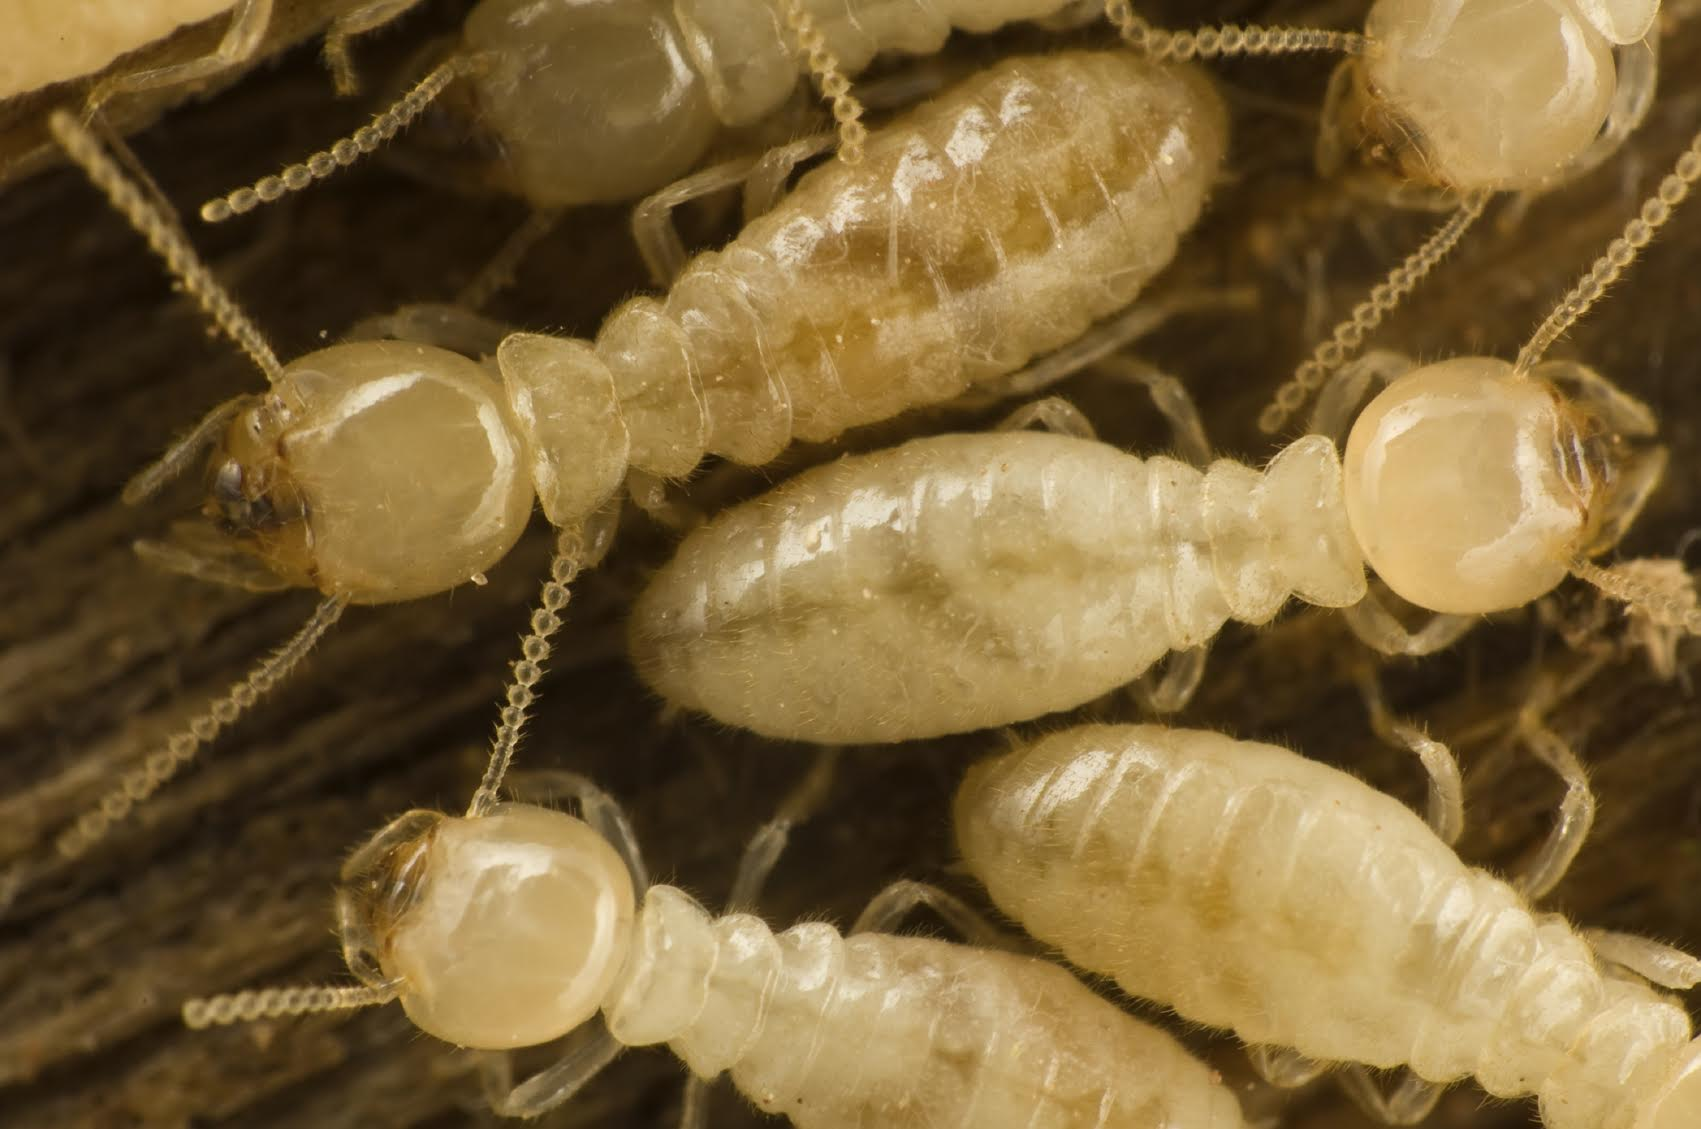 10 Ways To Keep Your Home Termite Free